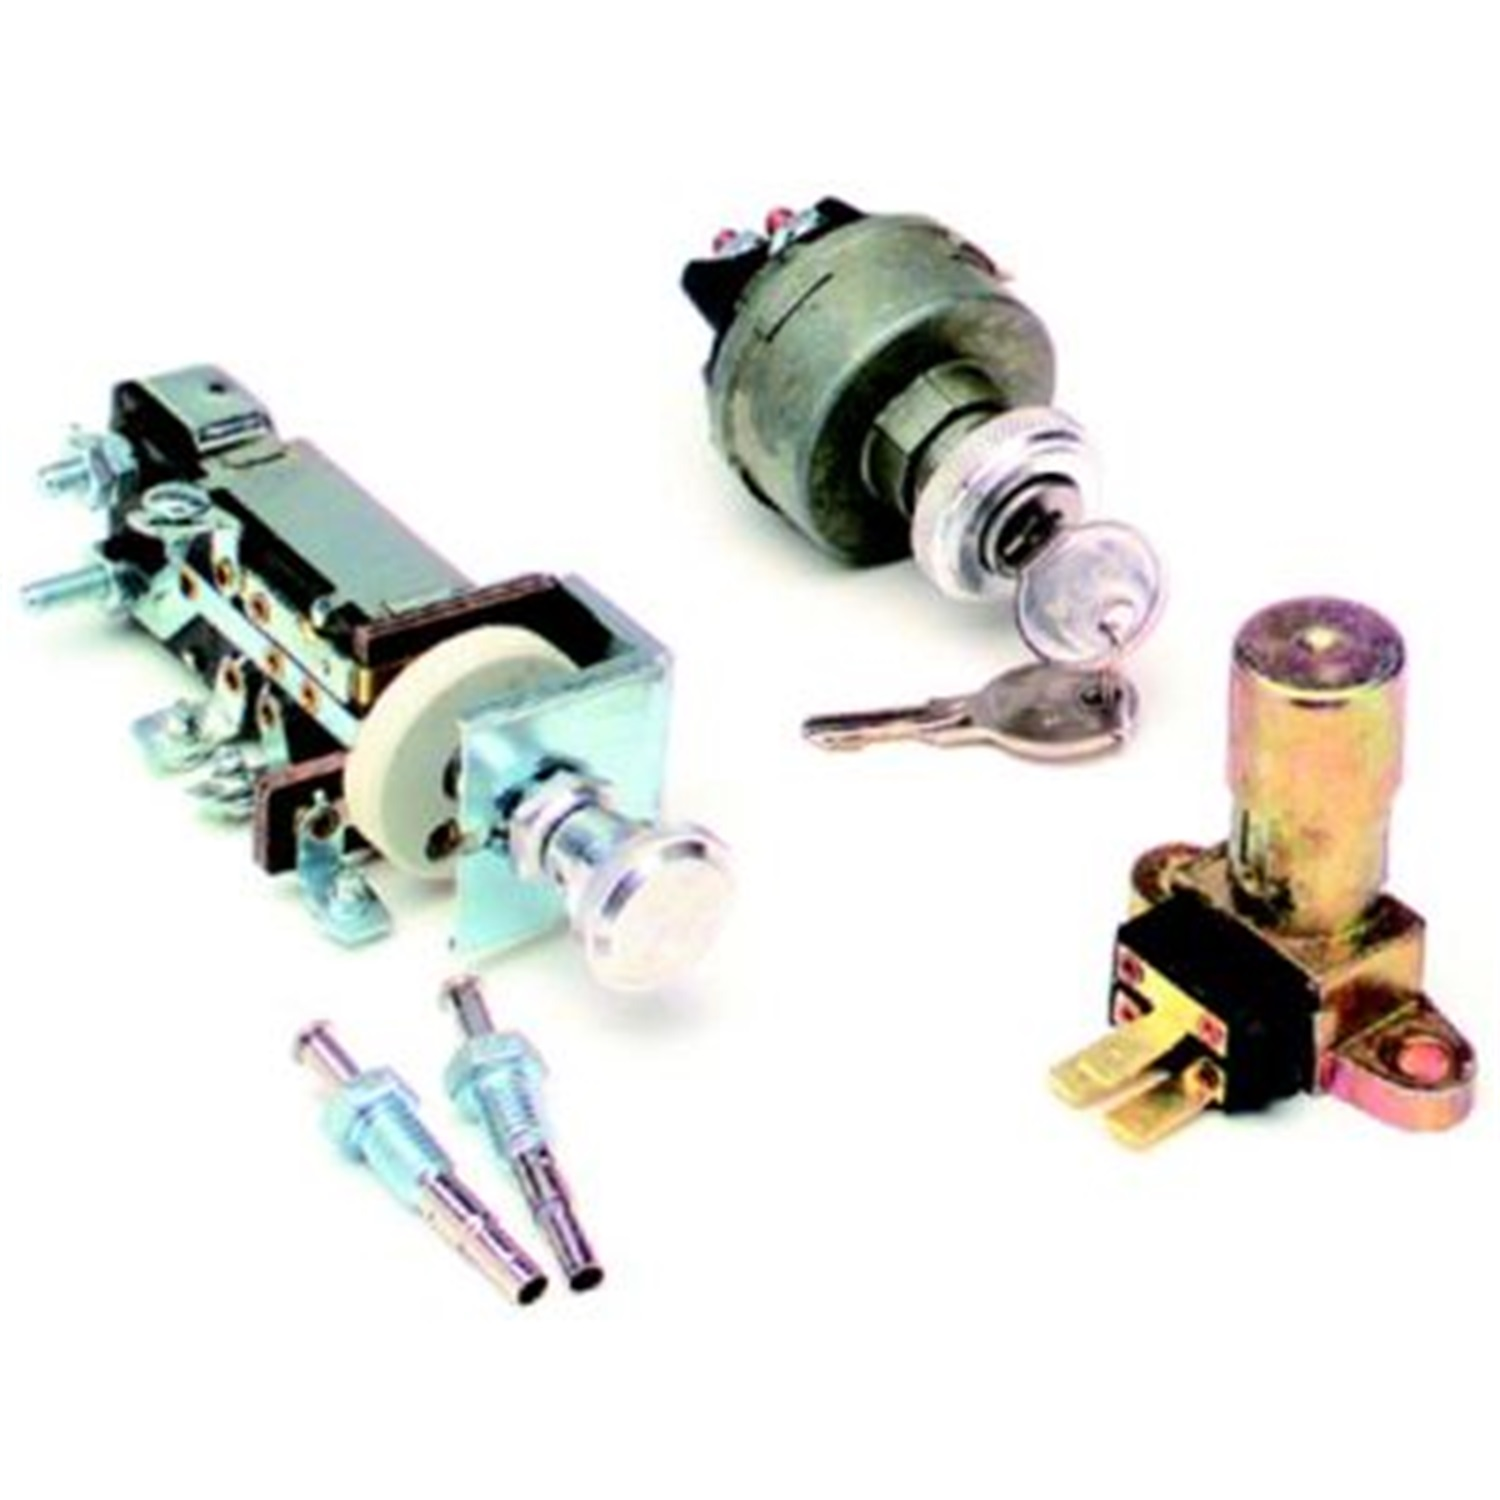 hight resolution of painless performance 80121 pan80121 repl headlight switch kit lrg walmart com